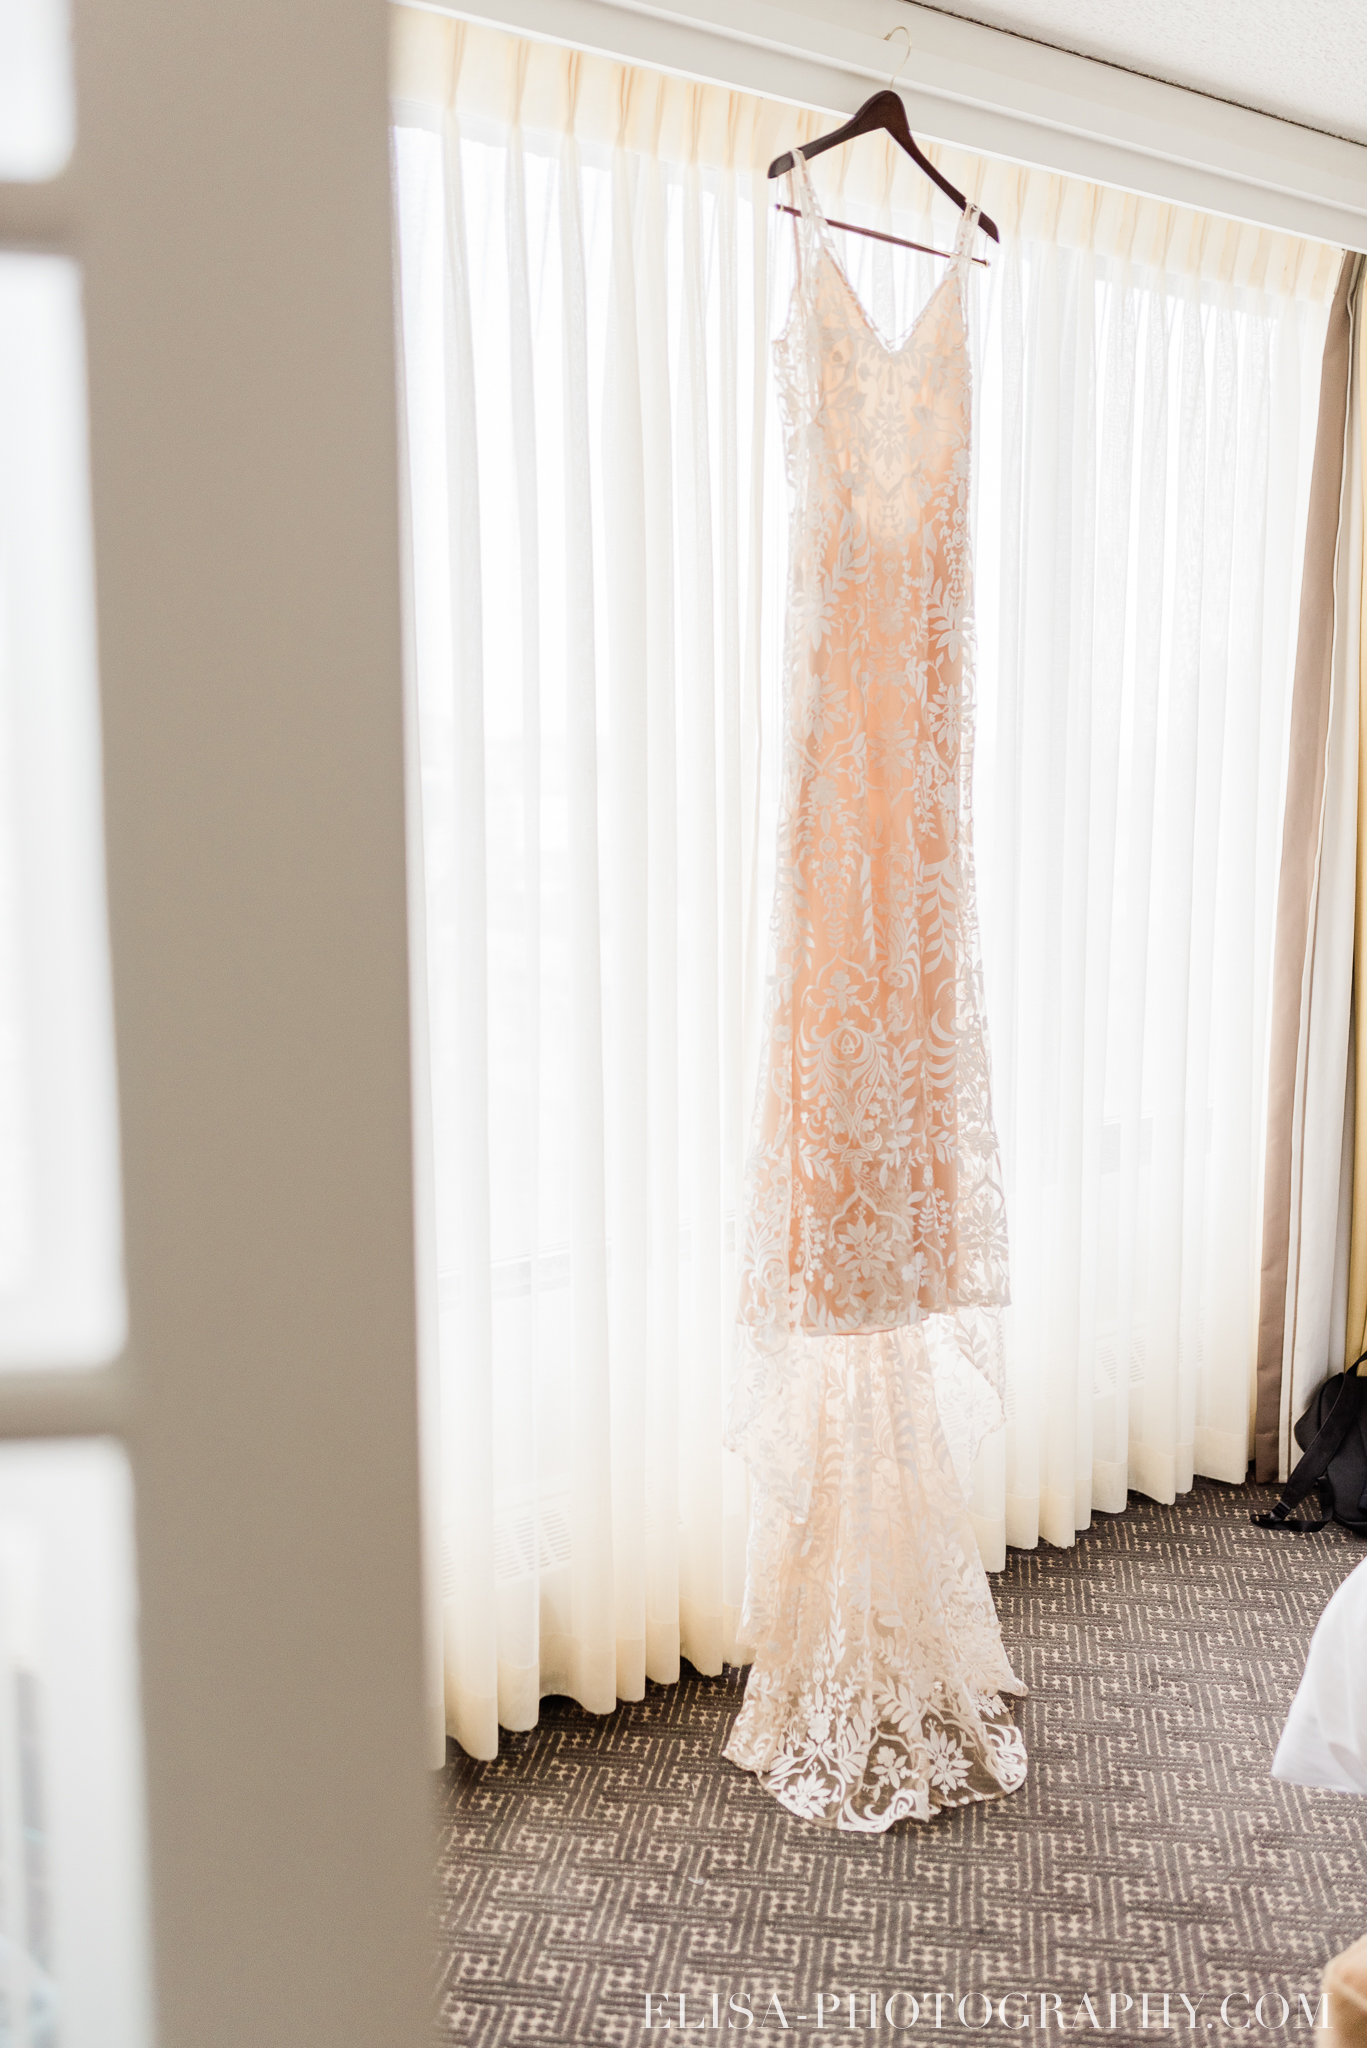 photo mariage hotel omni montreal robe beige champagne wedding dress elisa photographe 8434 - An elegant wedding under the marquee at the Forest and Stream Club in Montreal